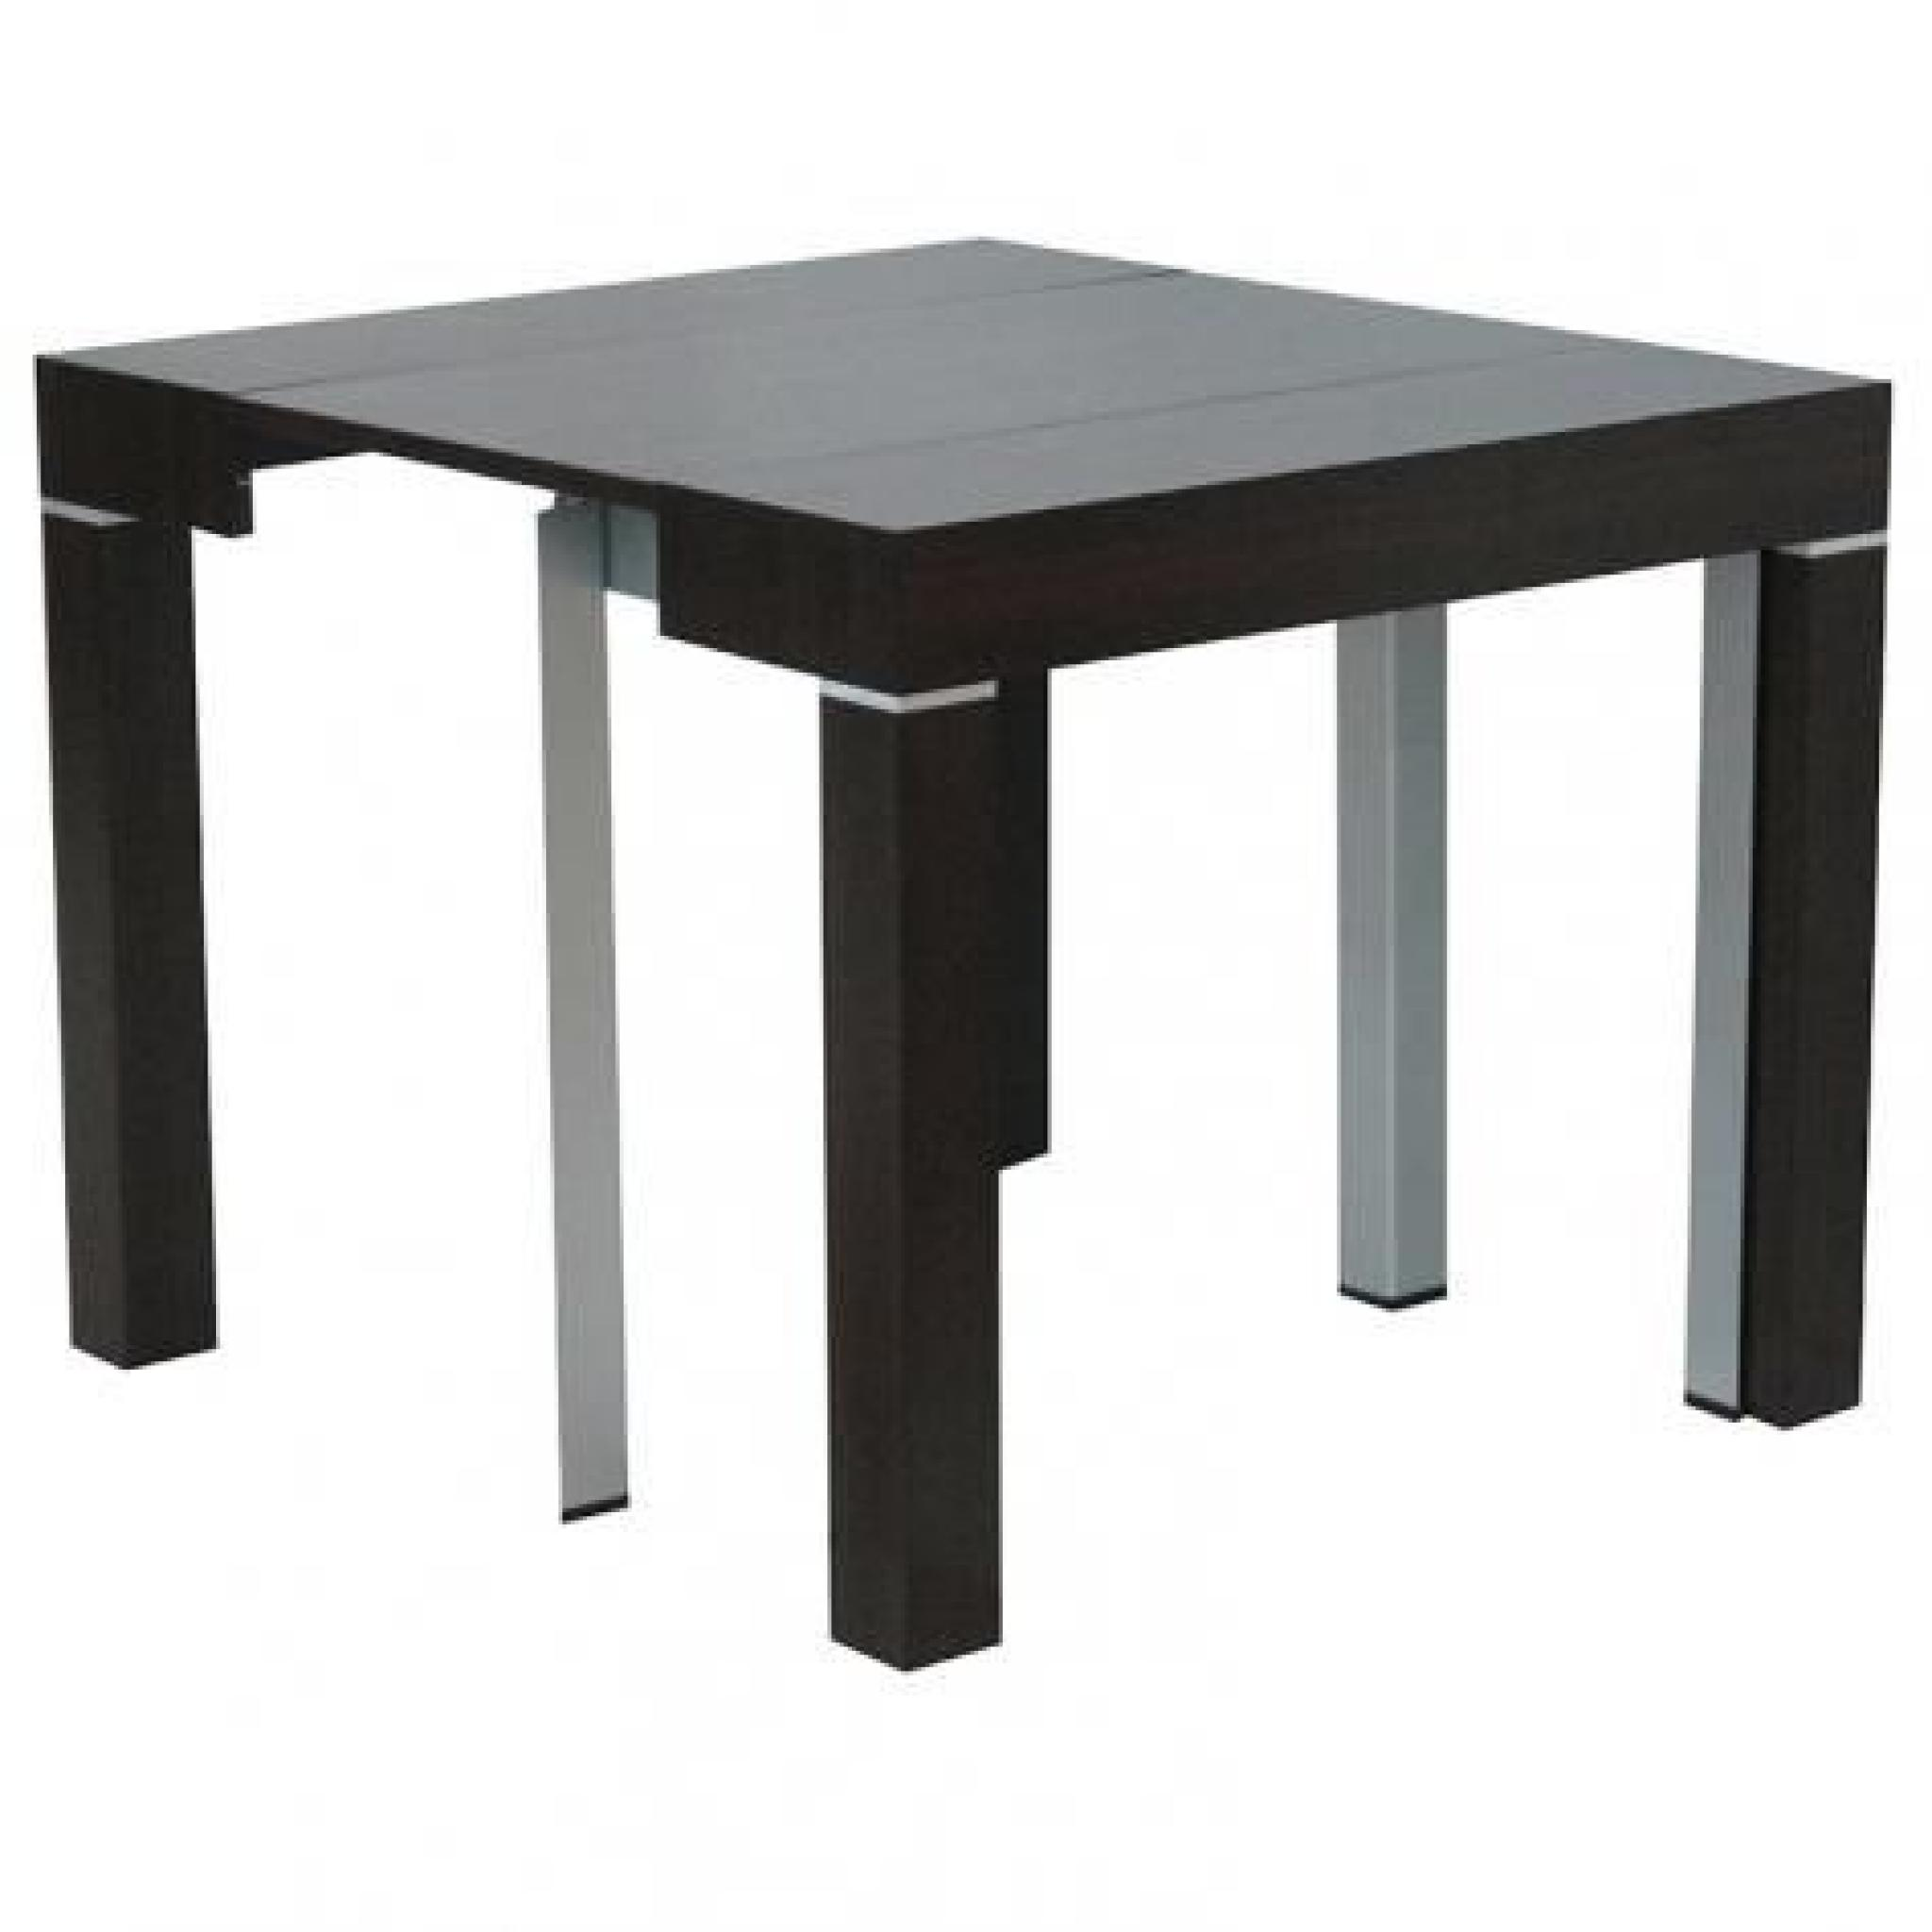 Table console extensible wenge avec 4 rallonges alesia for Table salle a manger console extensible